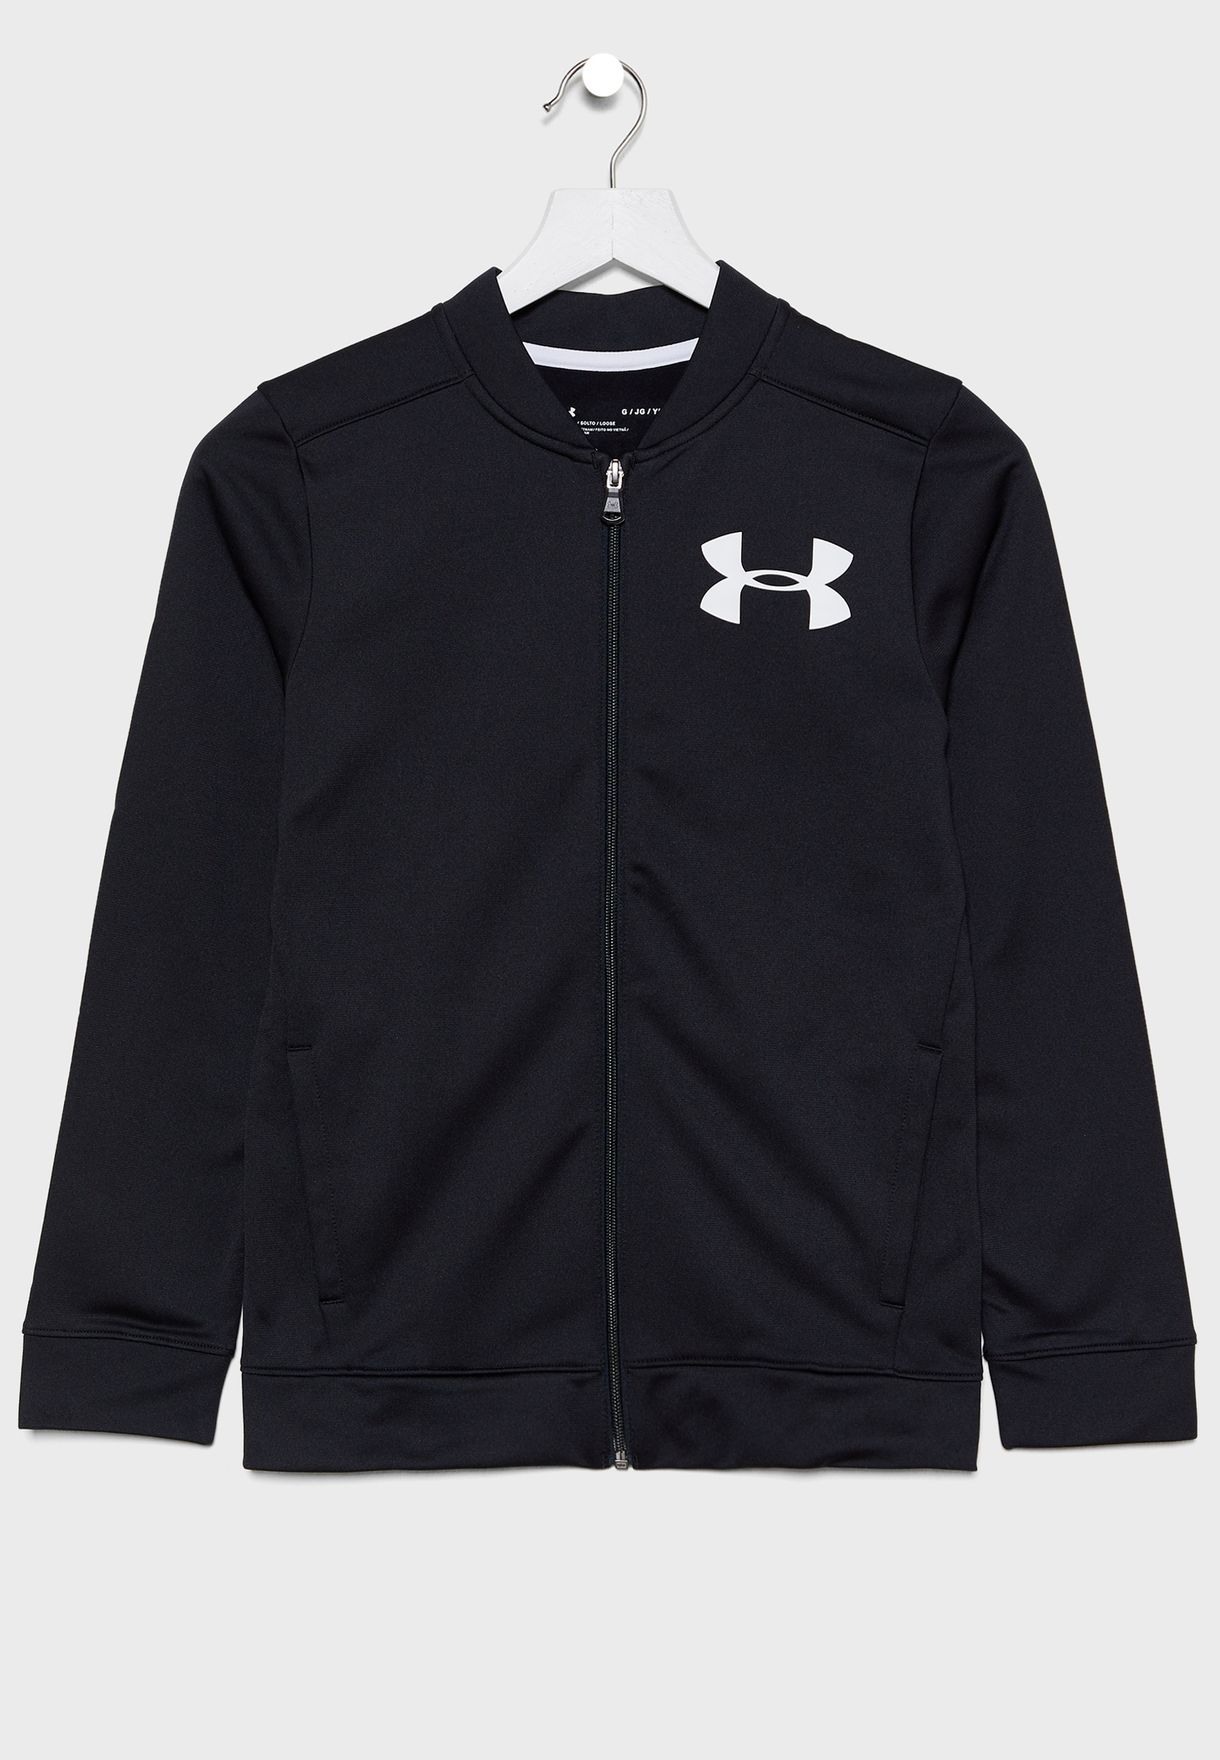 Youth Pennant 2.0 Jacket